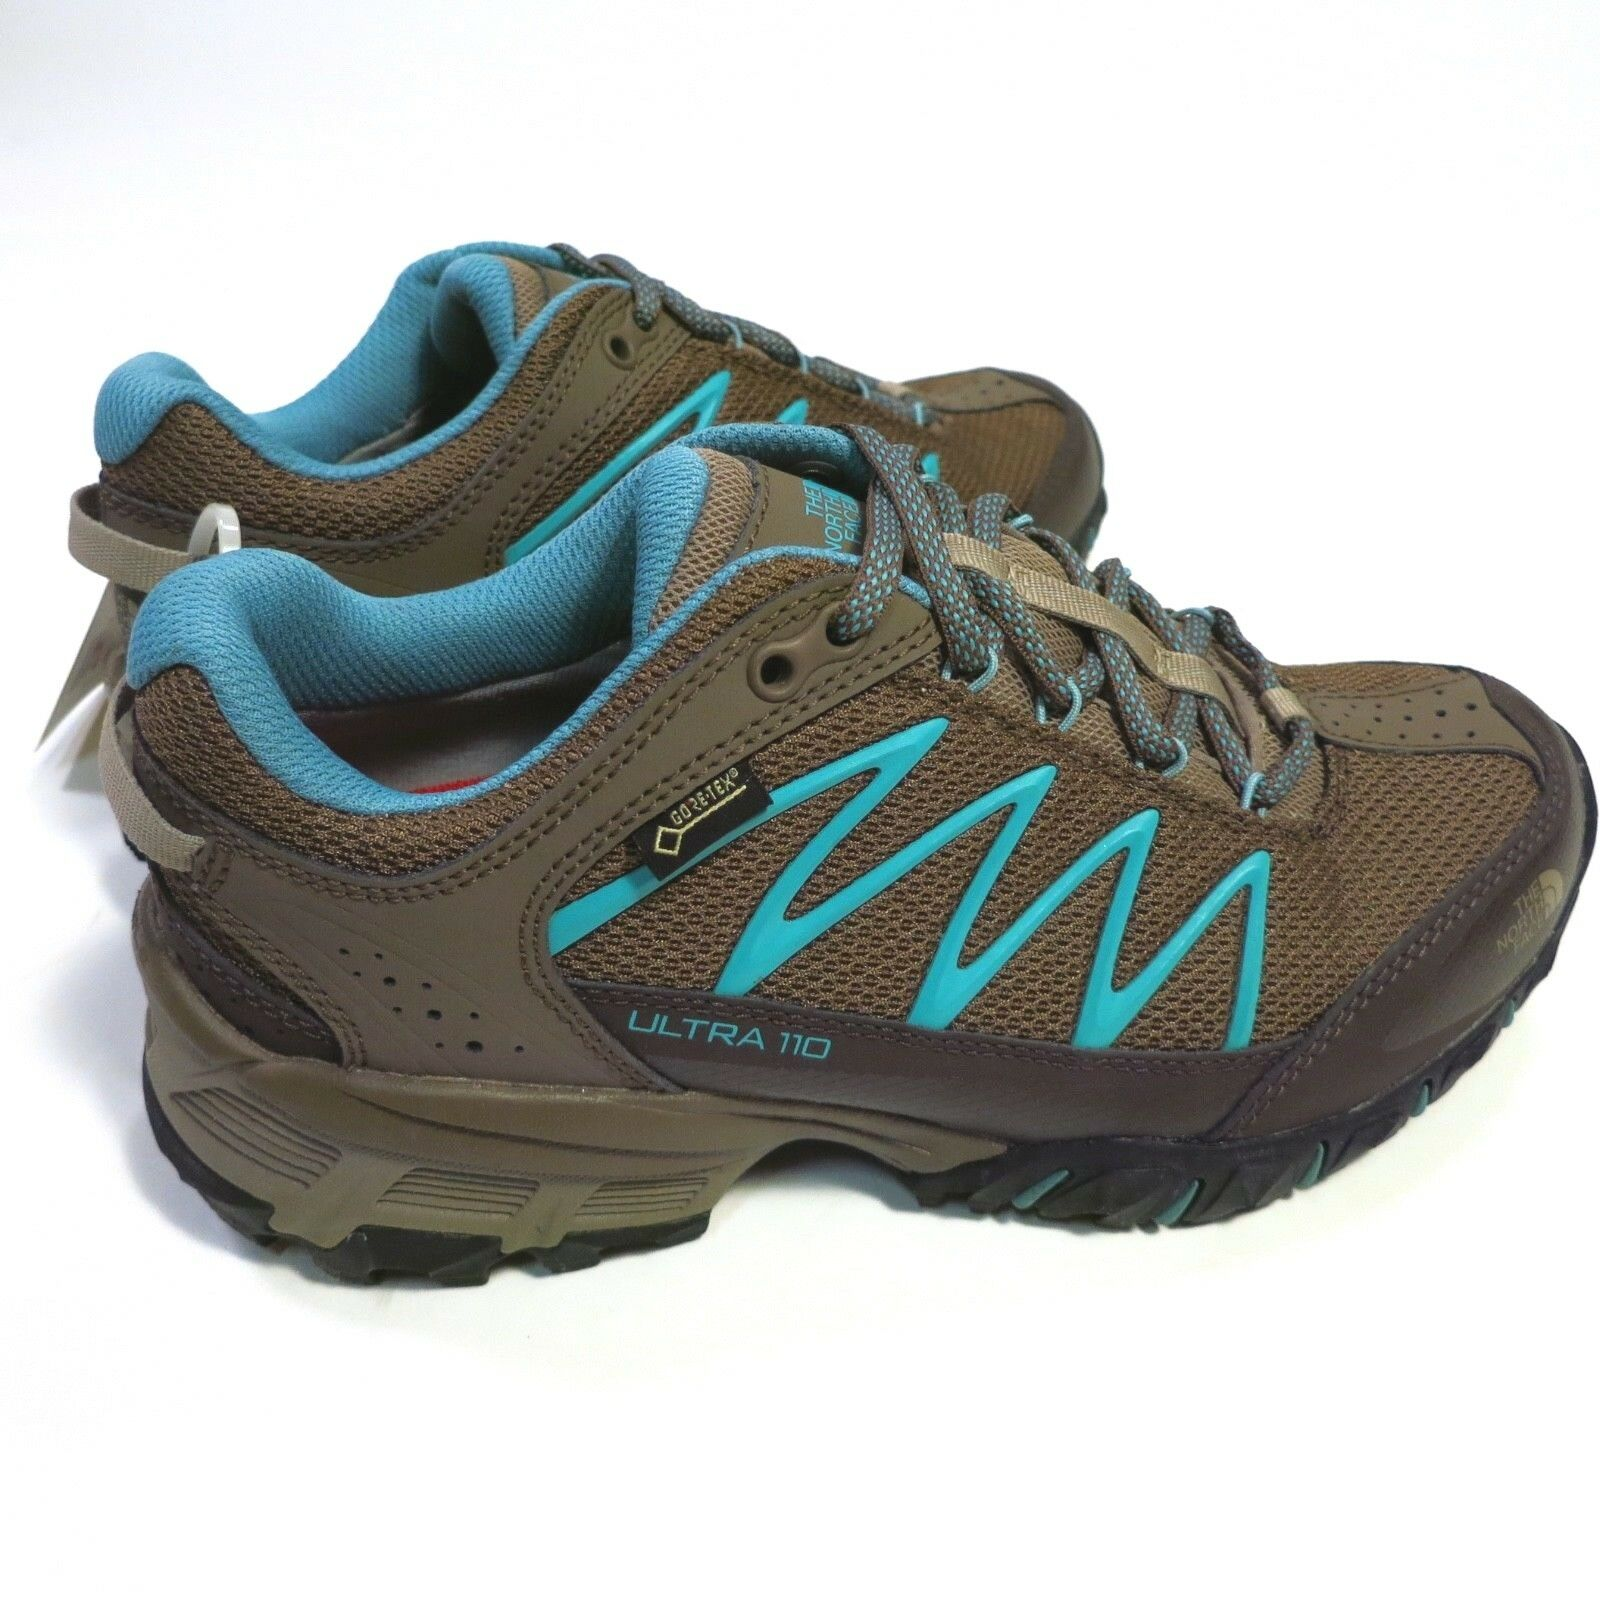 North Face Femme Ultra 110 Gore-Tex